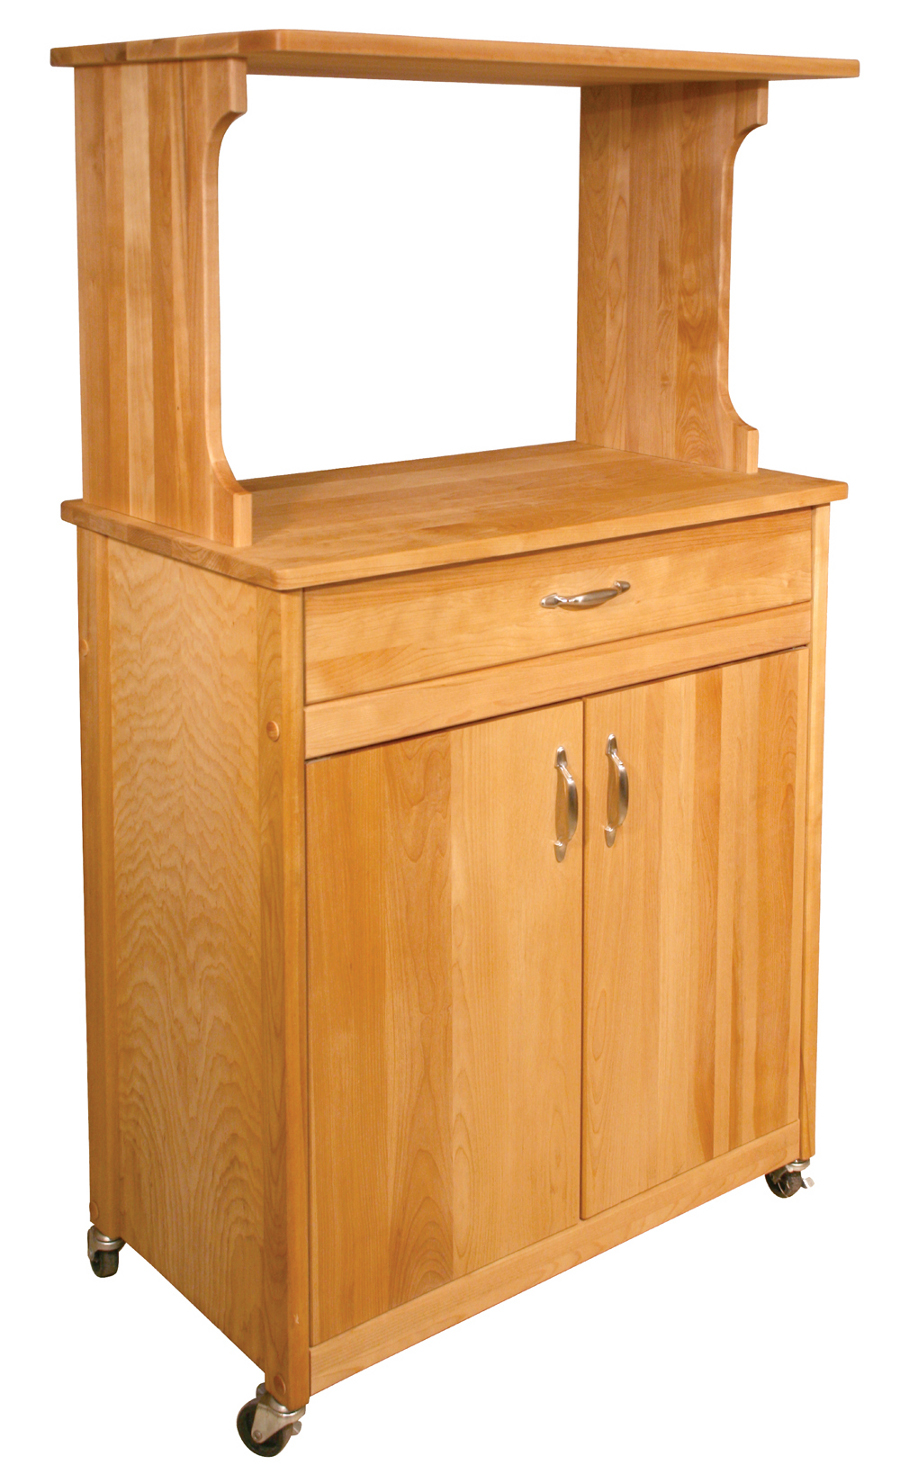 Microwave Kitchen Cart - Catskill #51537